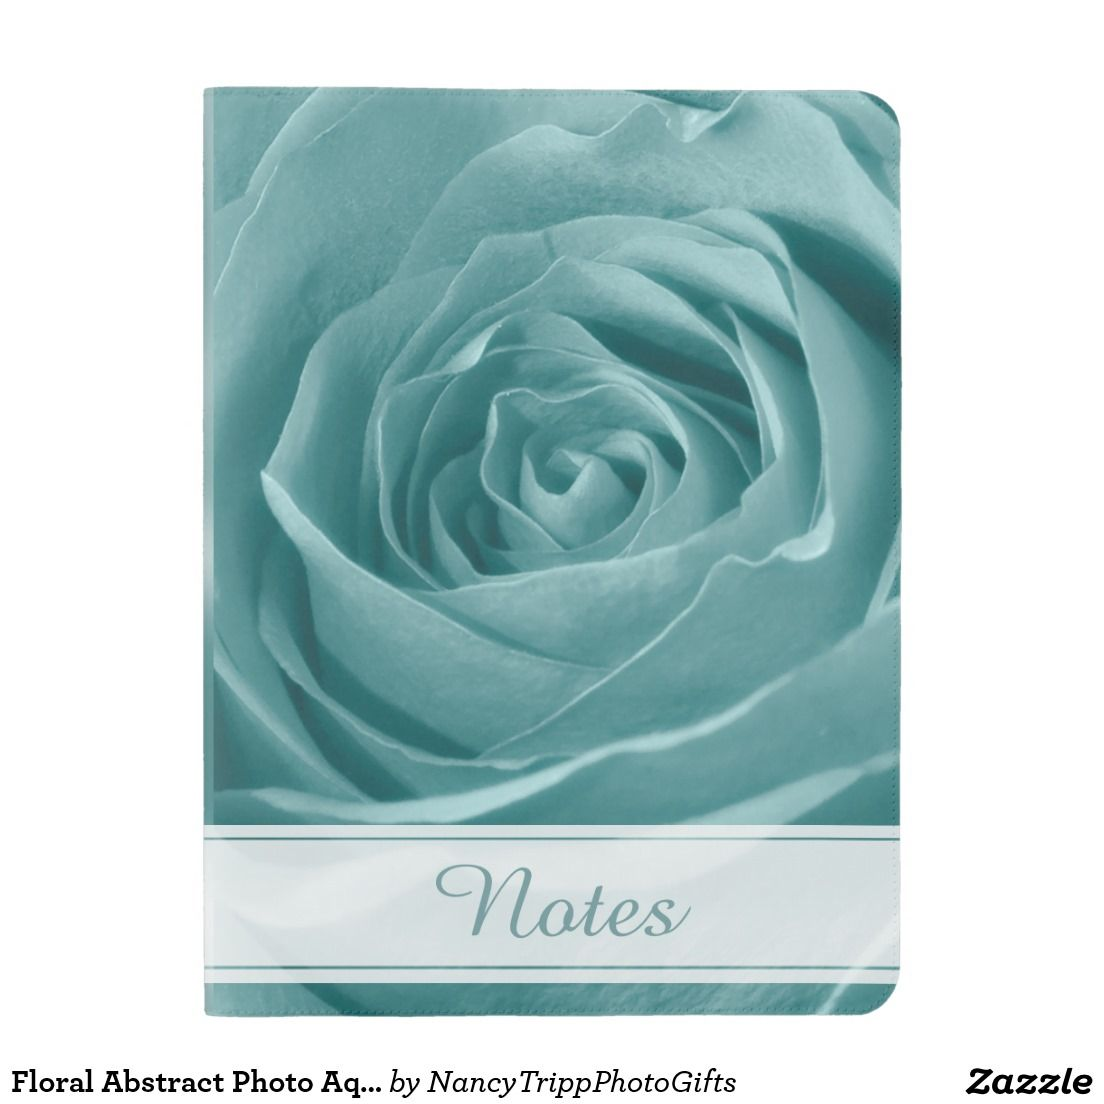 Floral Abstract Photo Aqua Rose Personalized Extra Large Moleskine Notebook Cover With Notebook